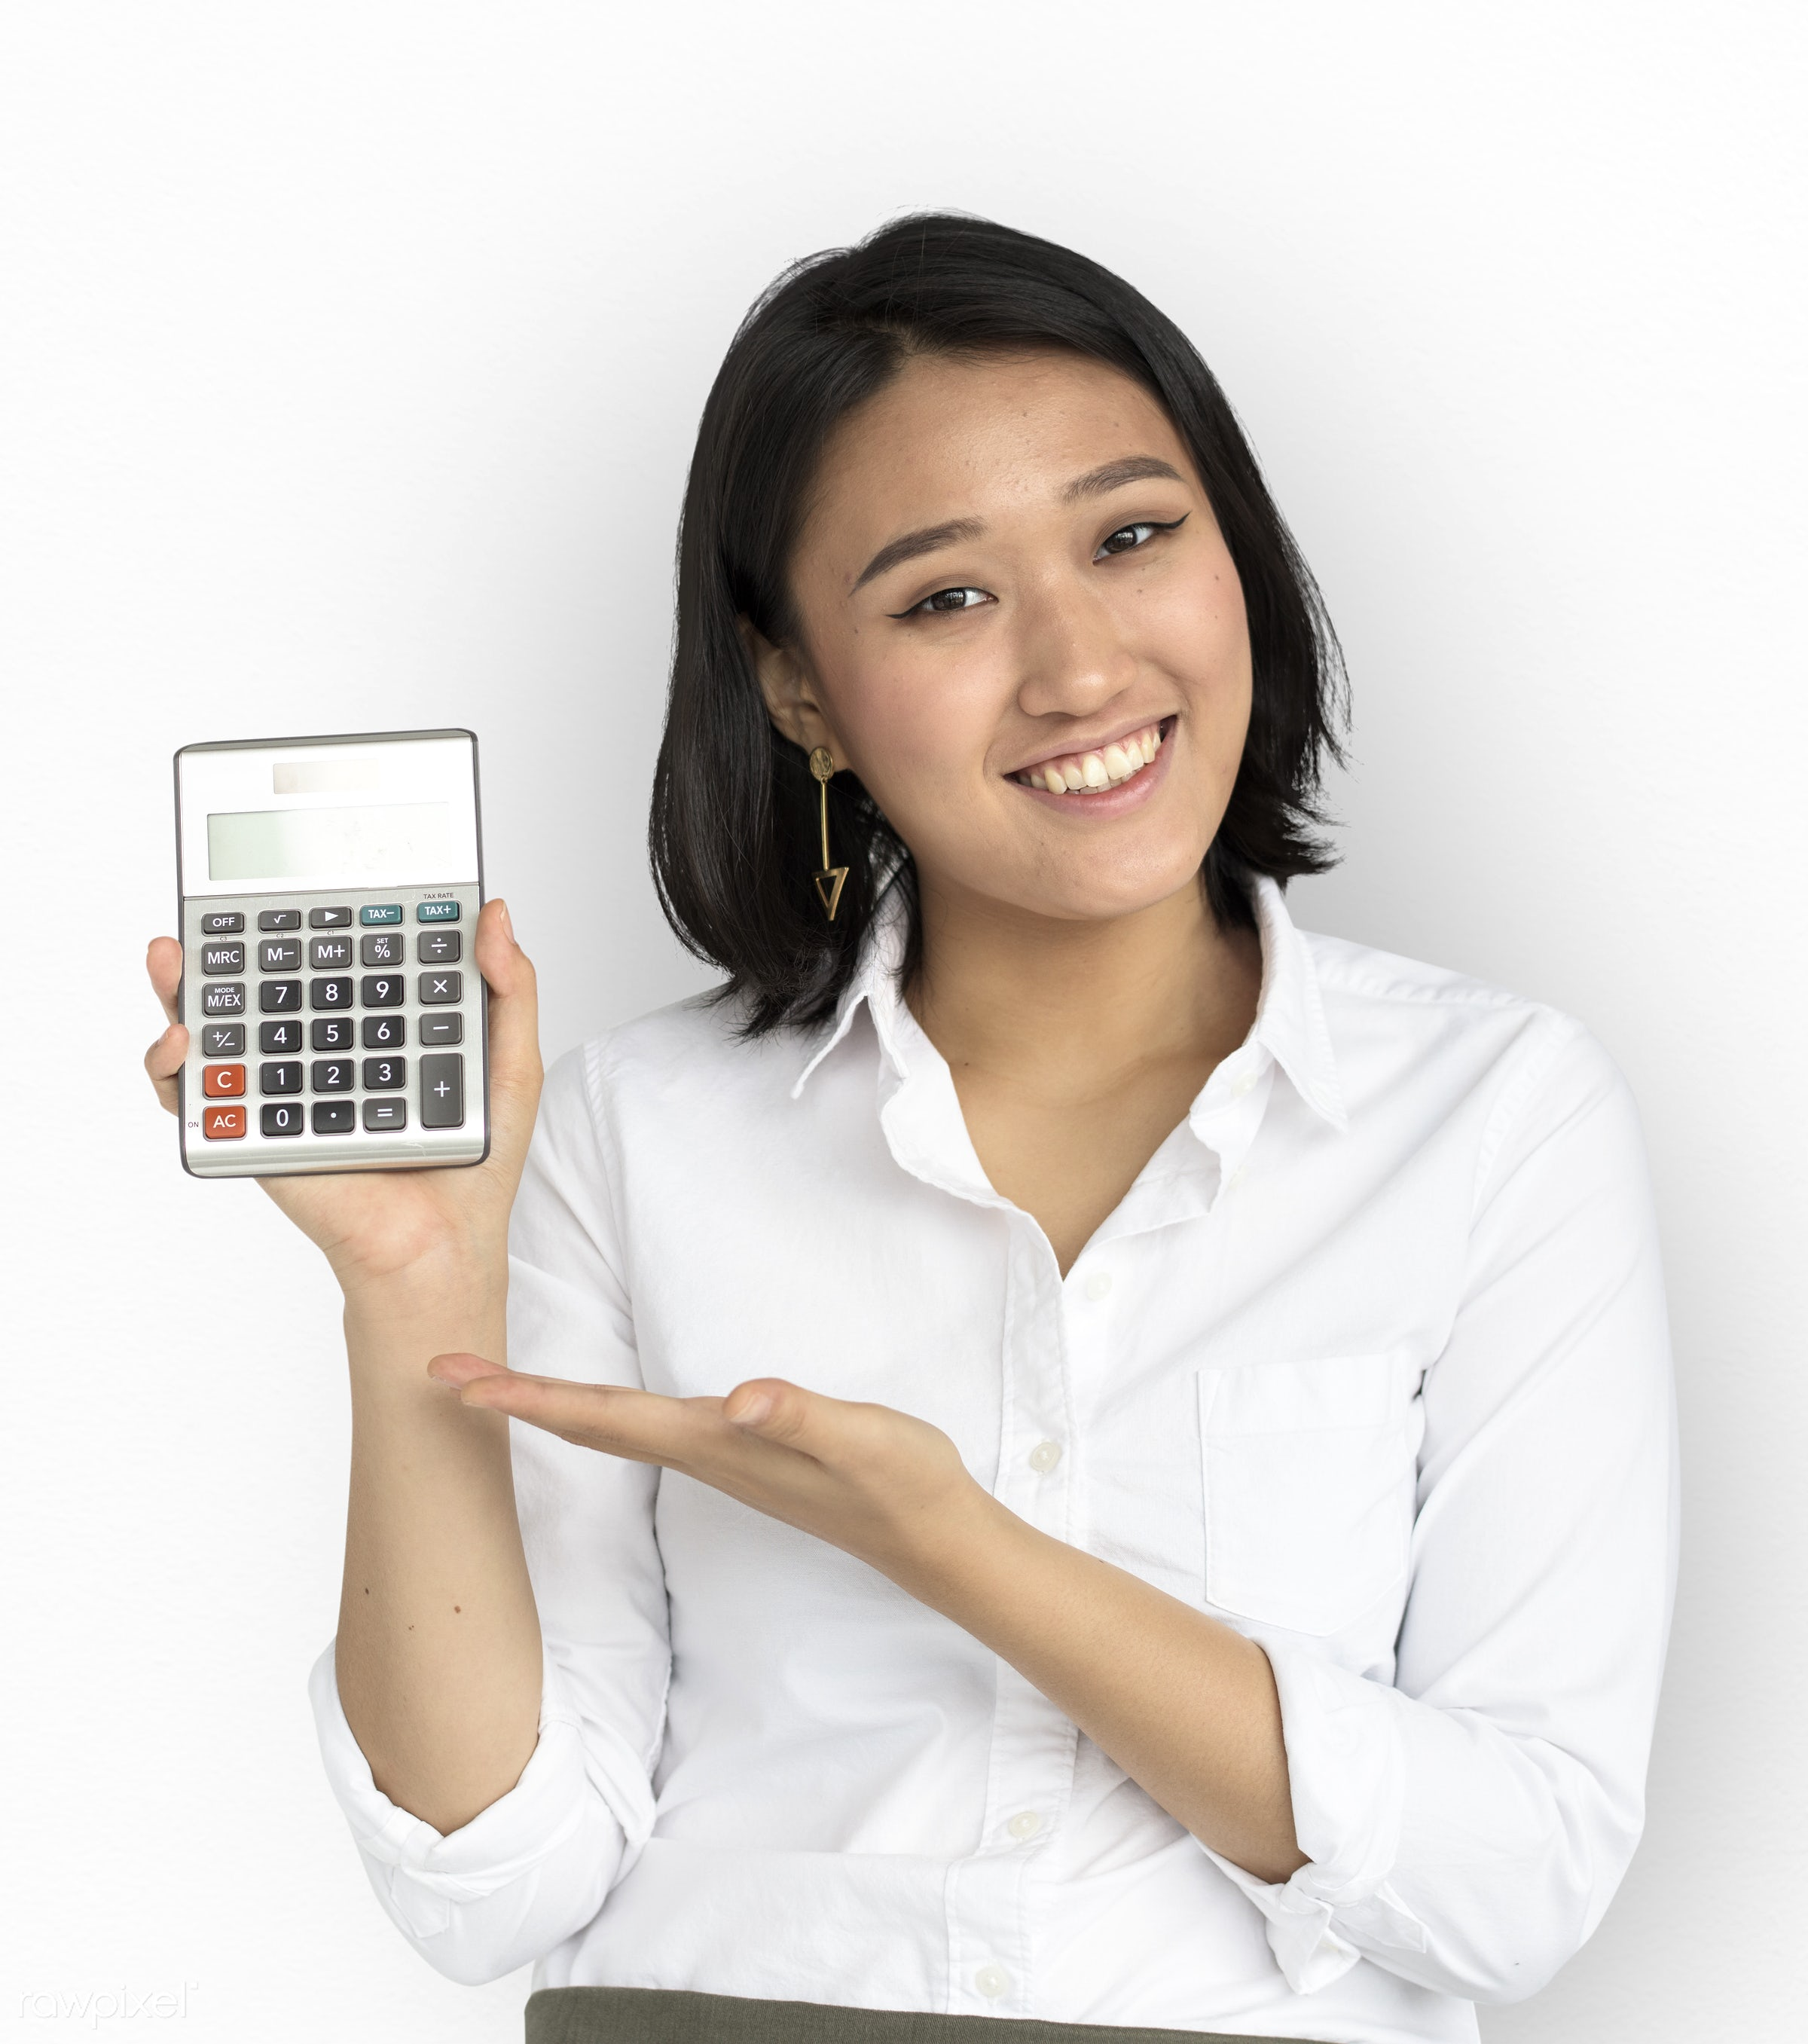 expression, studio, person, isolated on white, show, people, asian, girl, woman, showing, smile, calculator, smiling, formal...